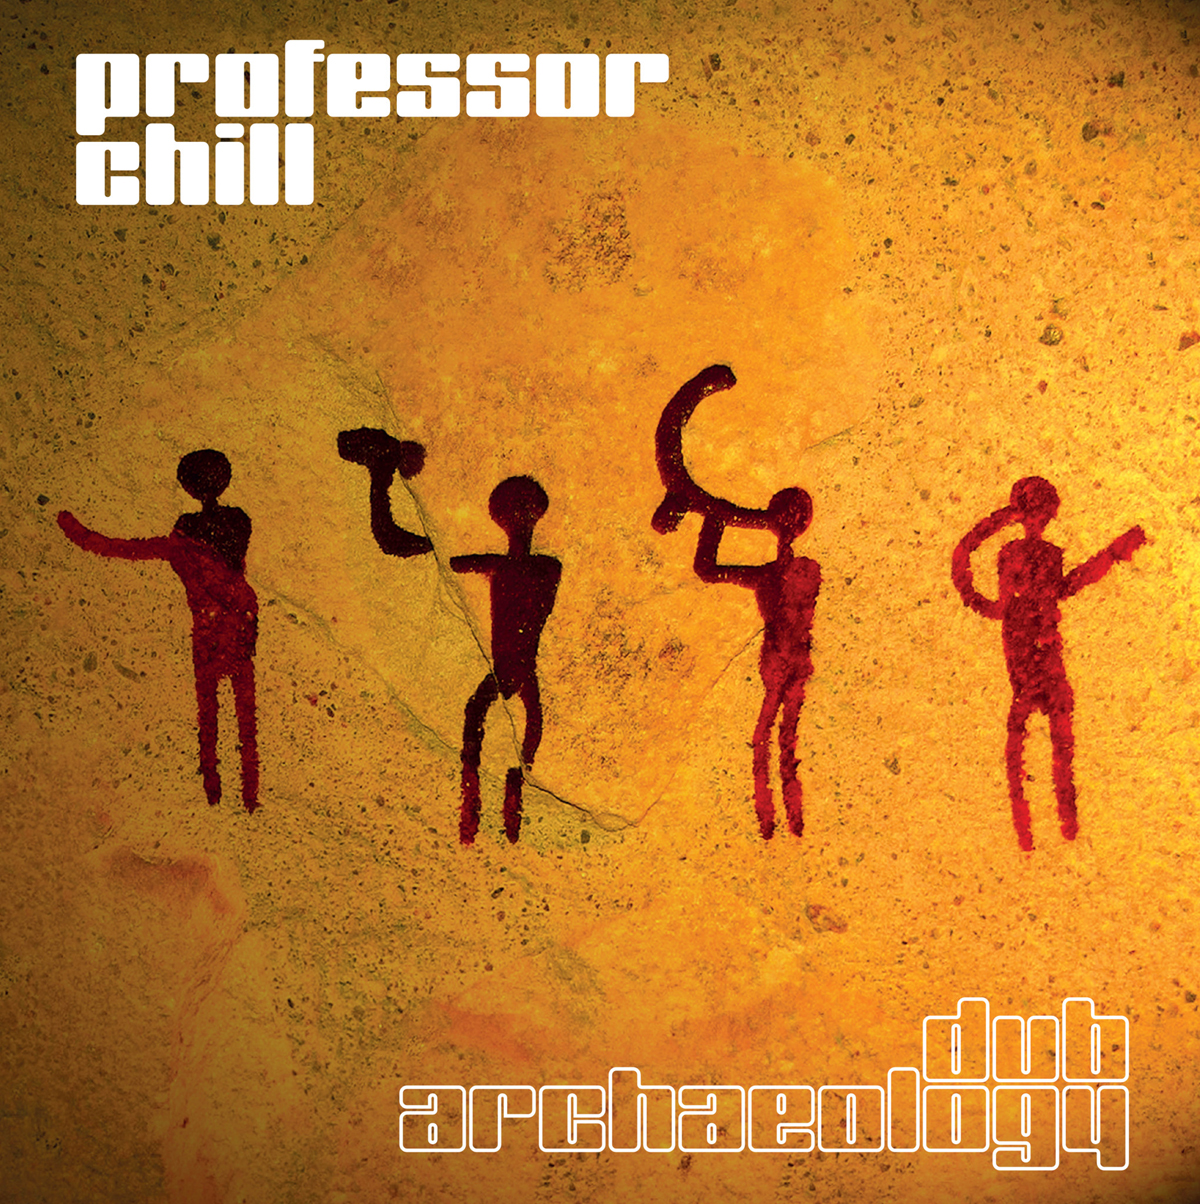 Professor Chill album Dub Archaeology. Cave art and acoustics. Soundworld of the past. Archaeology. Electronica.